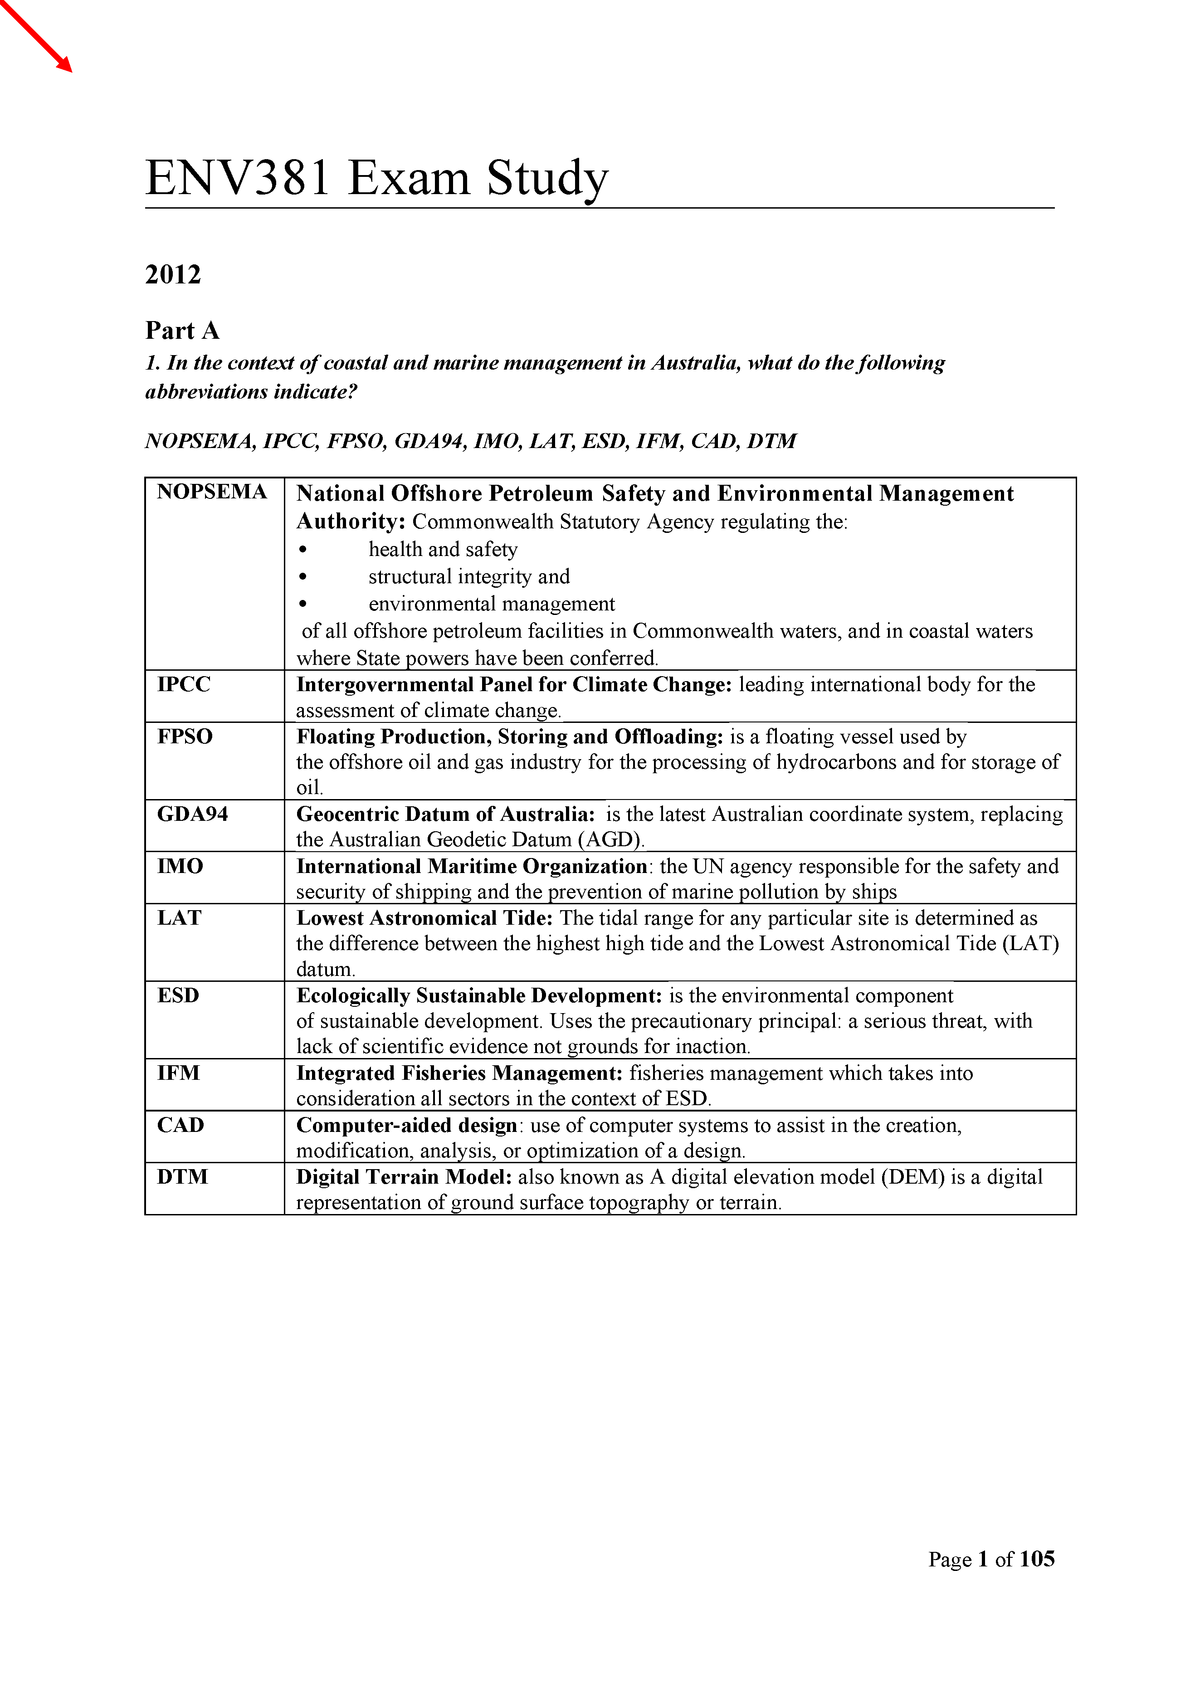 Sample/practice exam 2013, questions and answers - ENV333